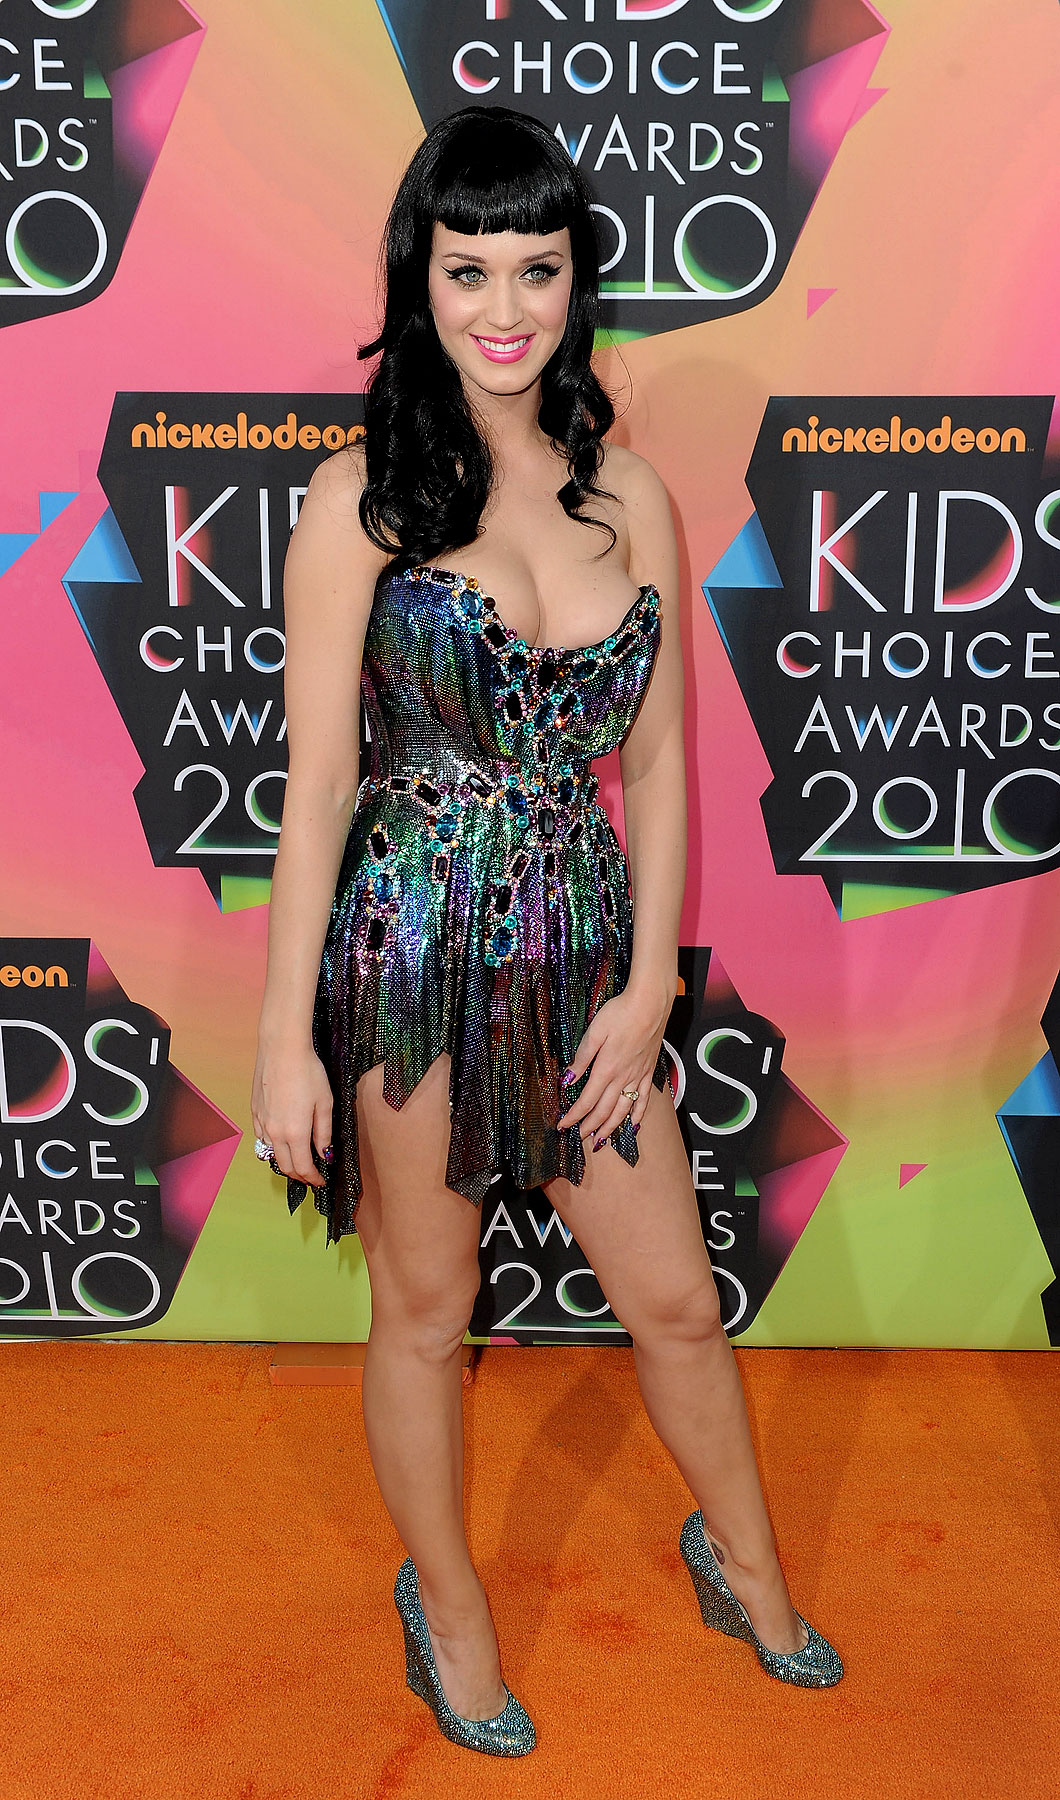 Worst Dressed: 2010 Kids' Choice Awards Fashion FAILs (PHOTOS)